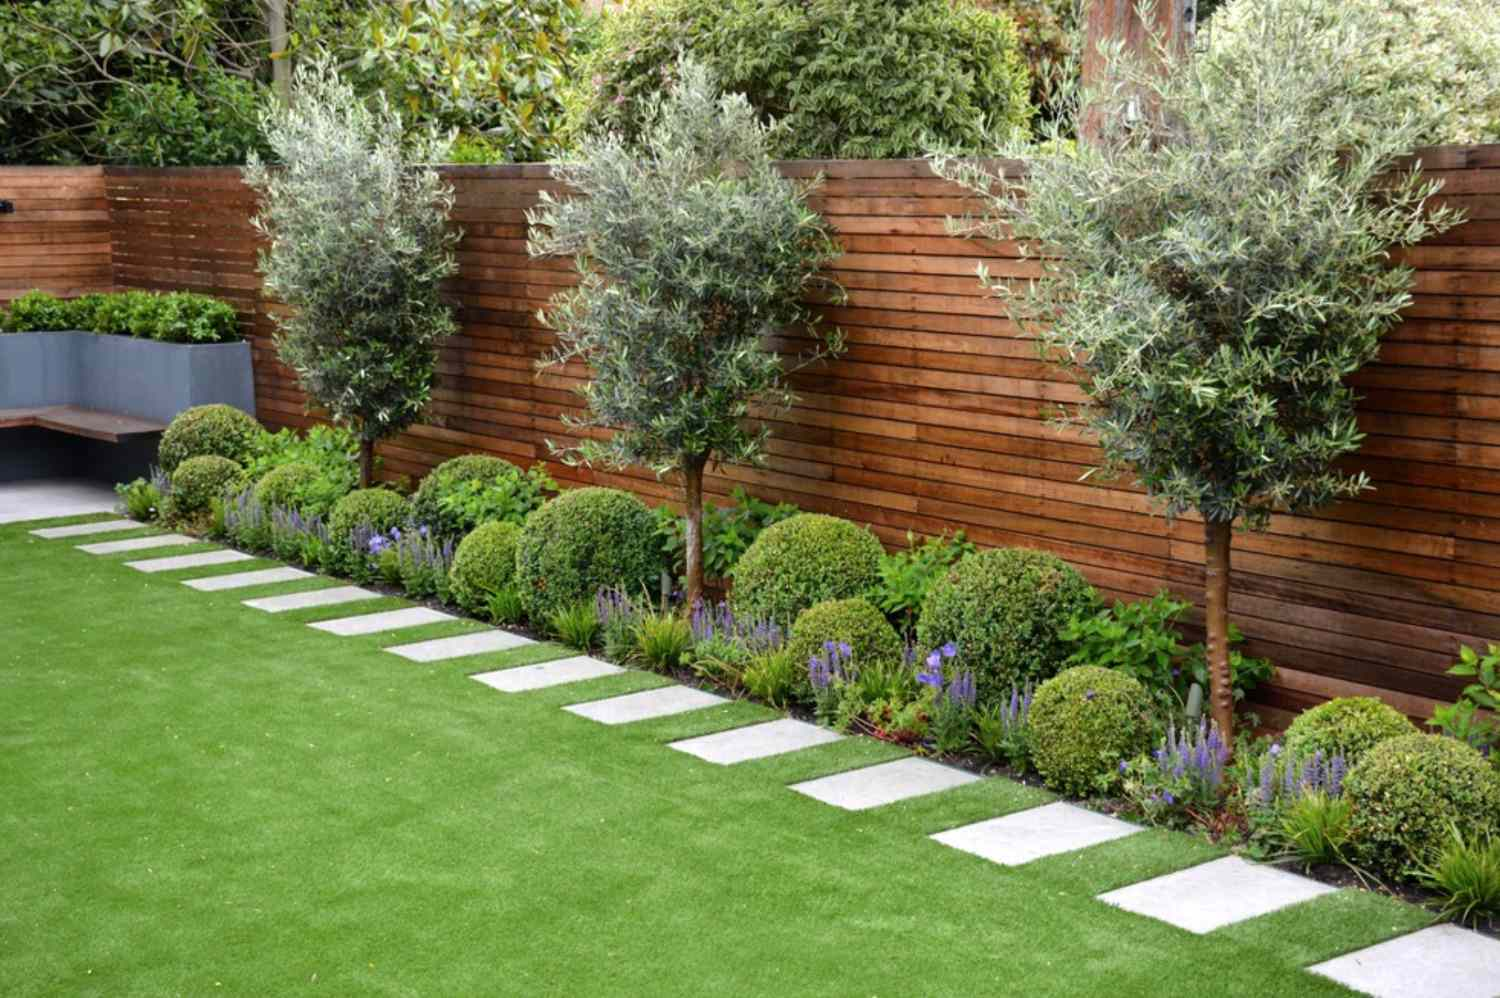 27 Backyard Landscaping Ideas to Inspire You